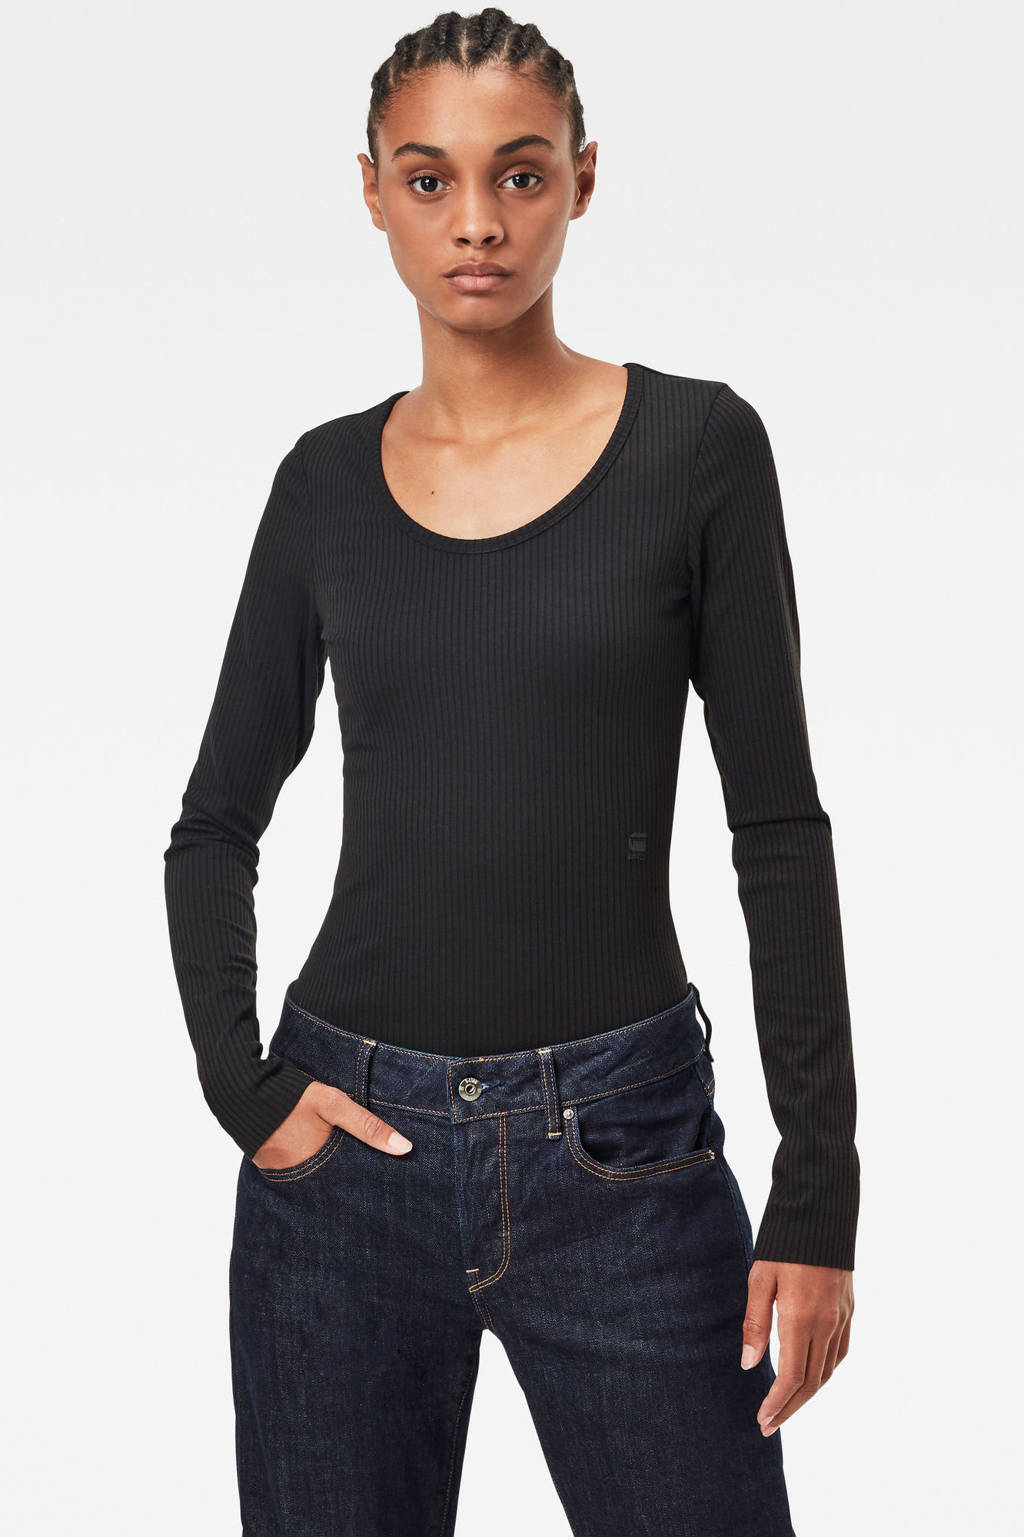 G-Star RAW ribgebreide body zwart, Zwart